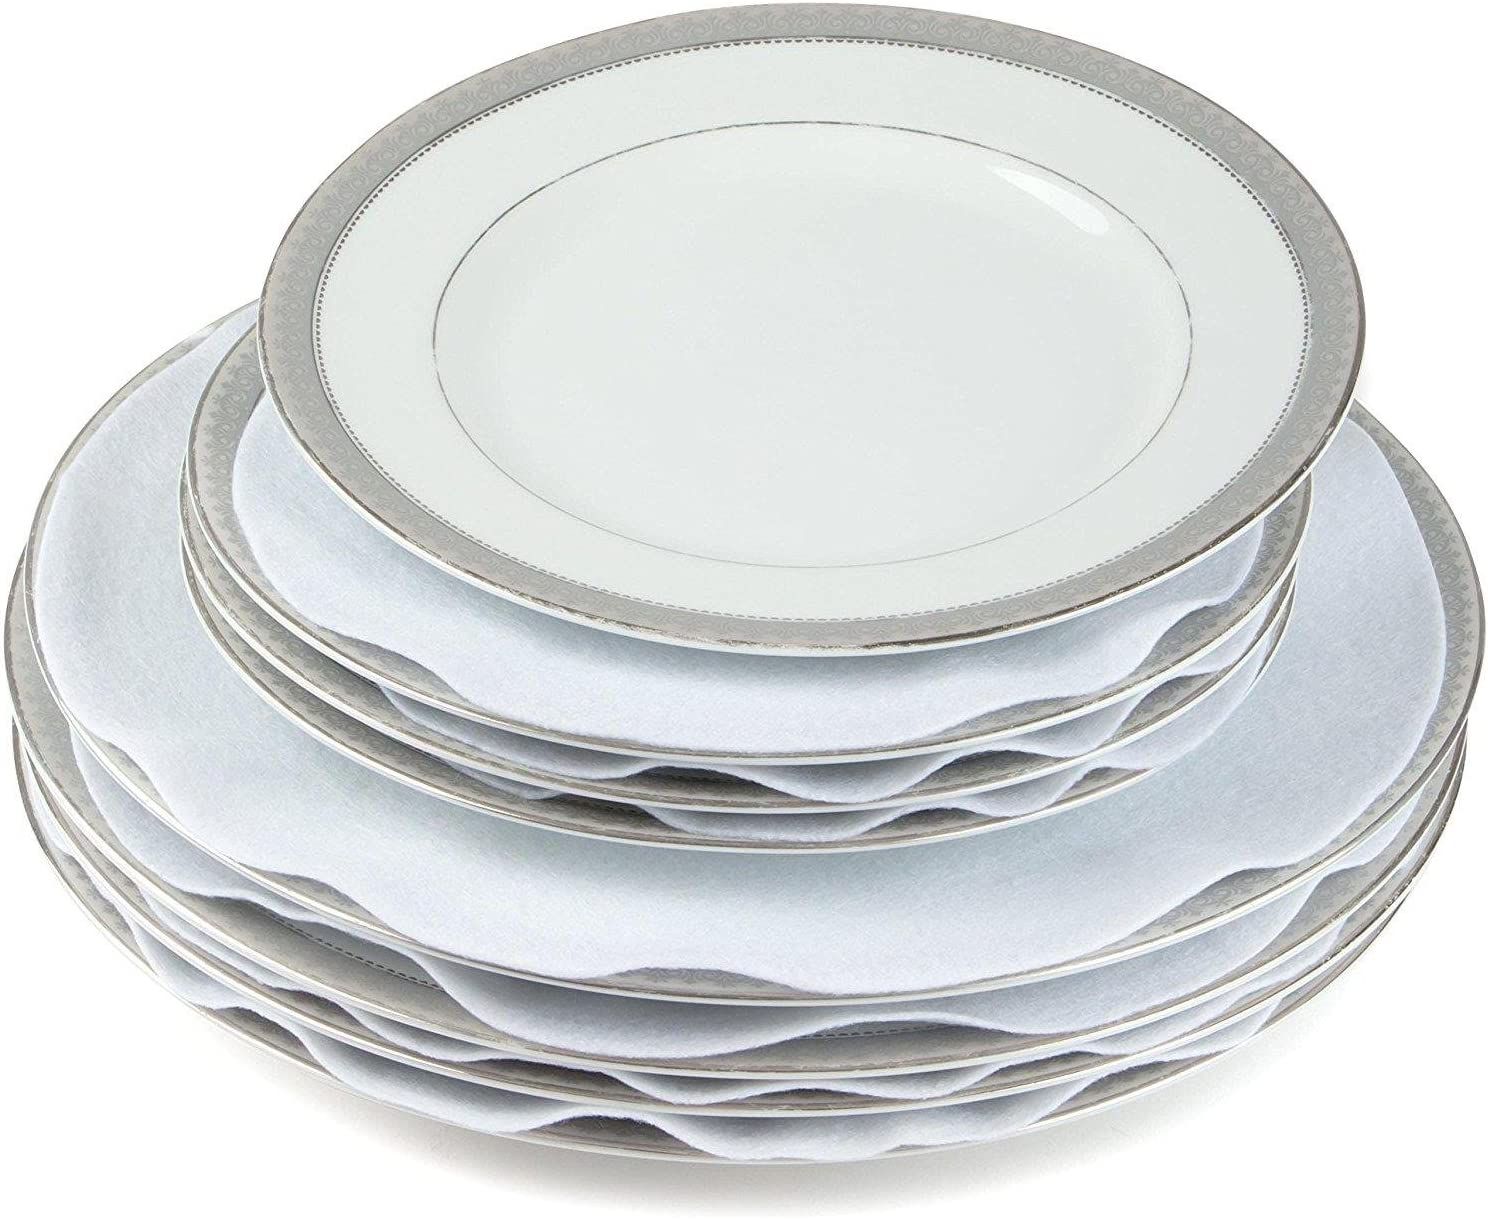 Oakland Mall Felt Plate China Storage Dividers Large Protectors 2021new shipping free shipping T White Extra